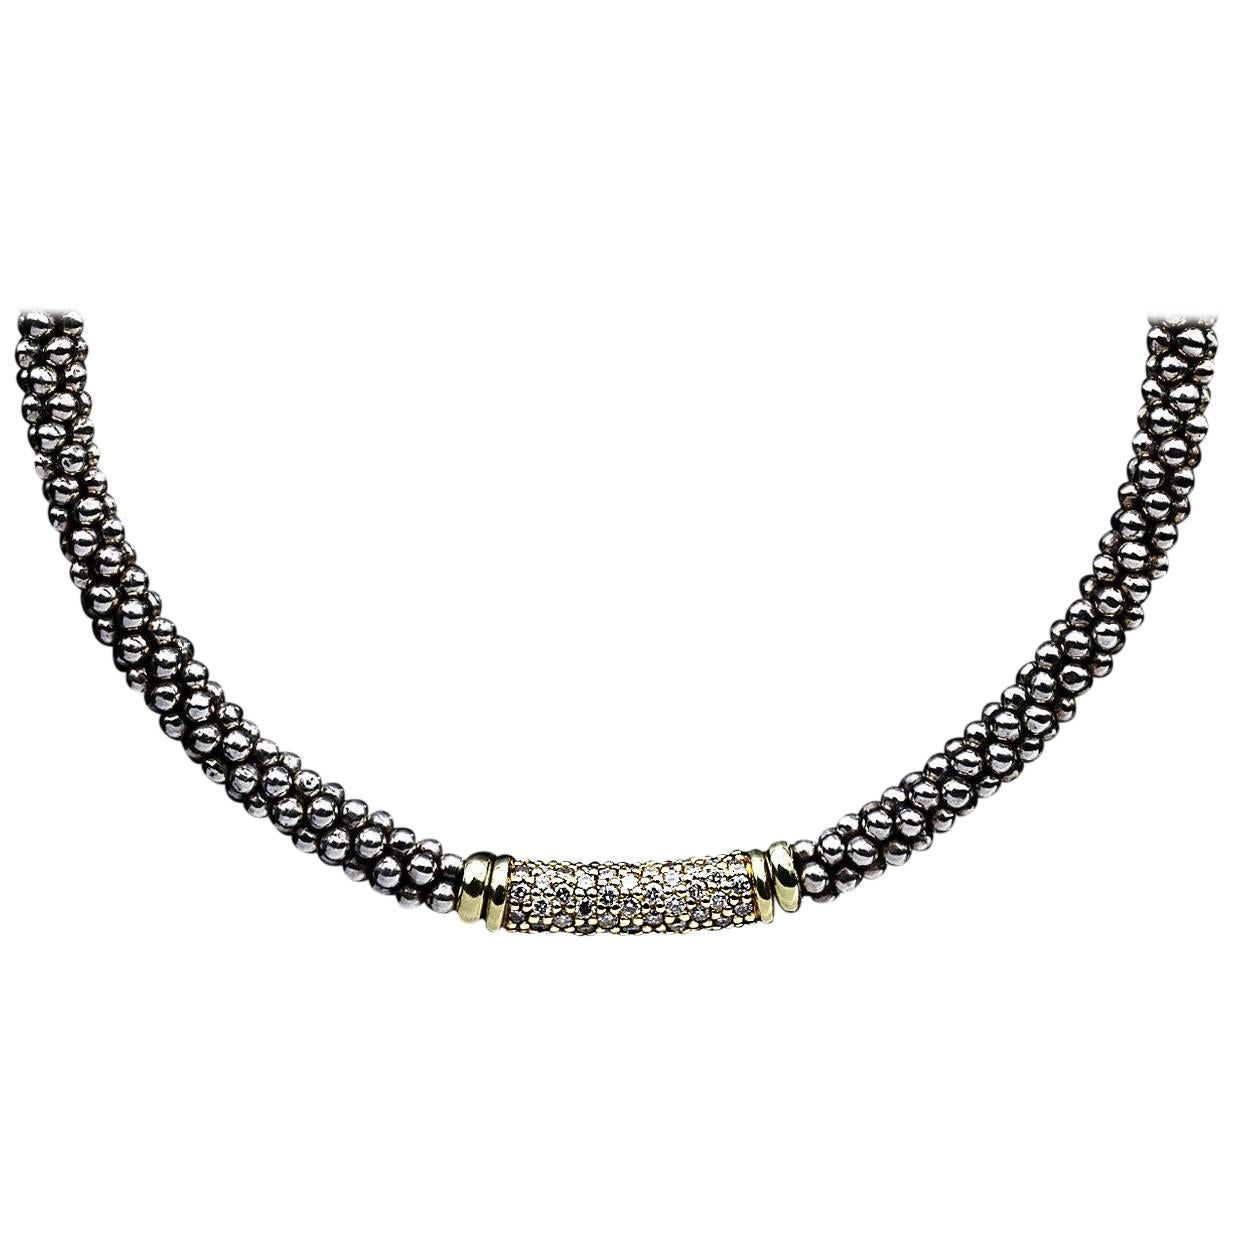 Lagos 18K Gold Caviar Rope Necklace, 18L